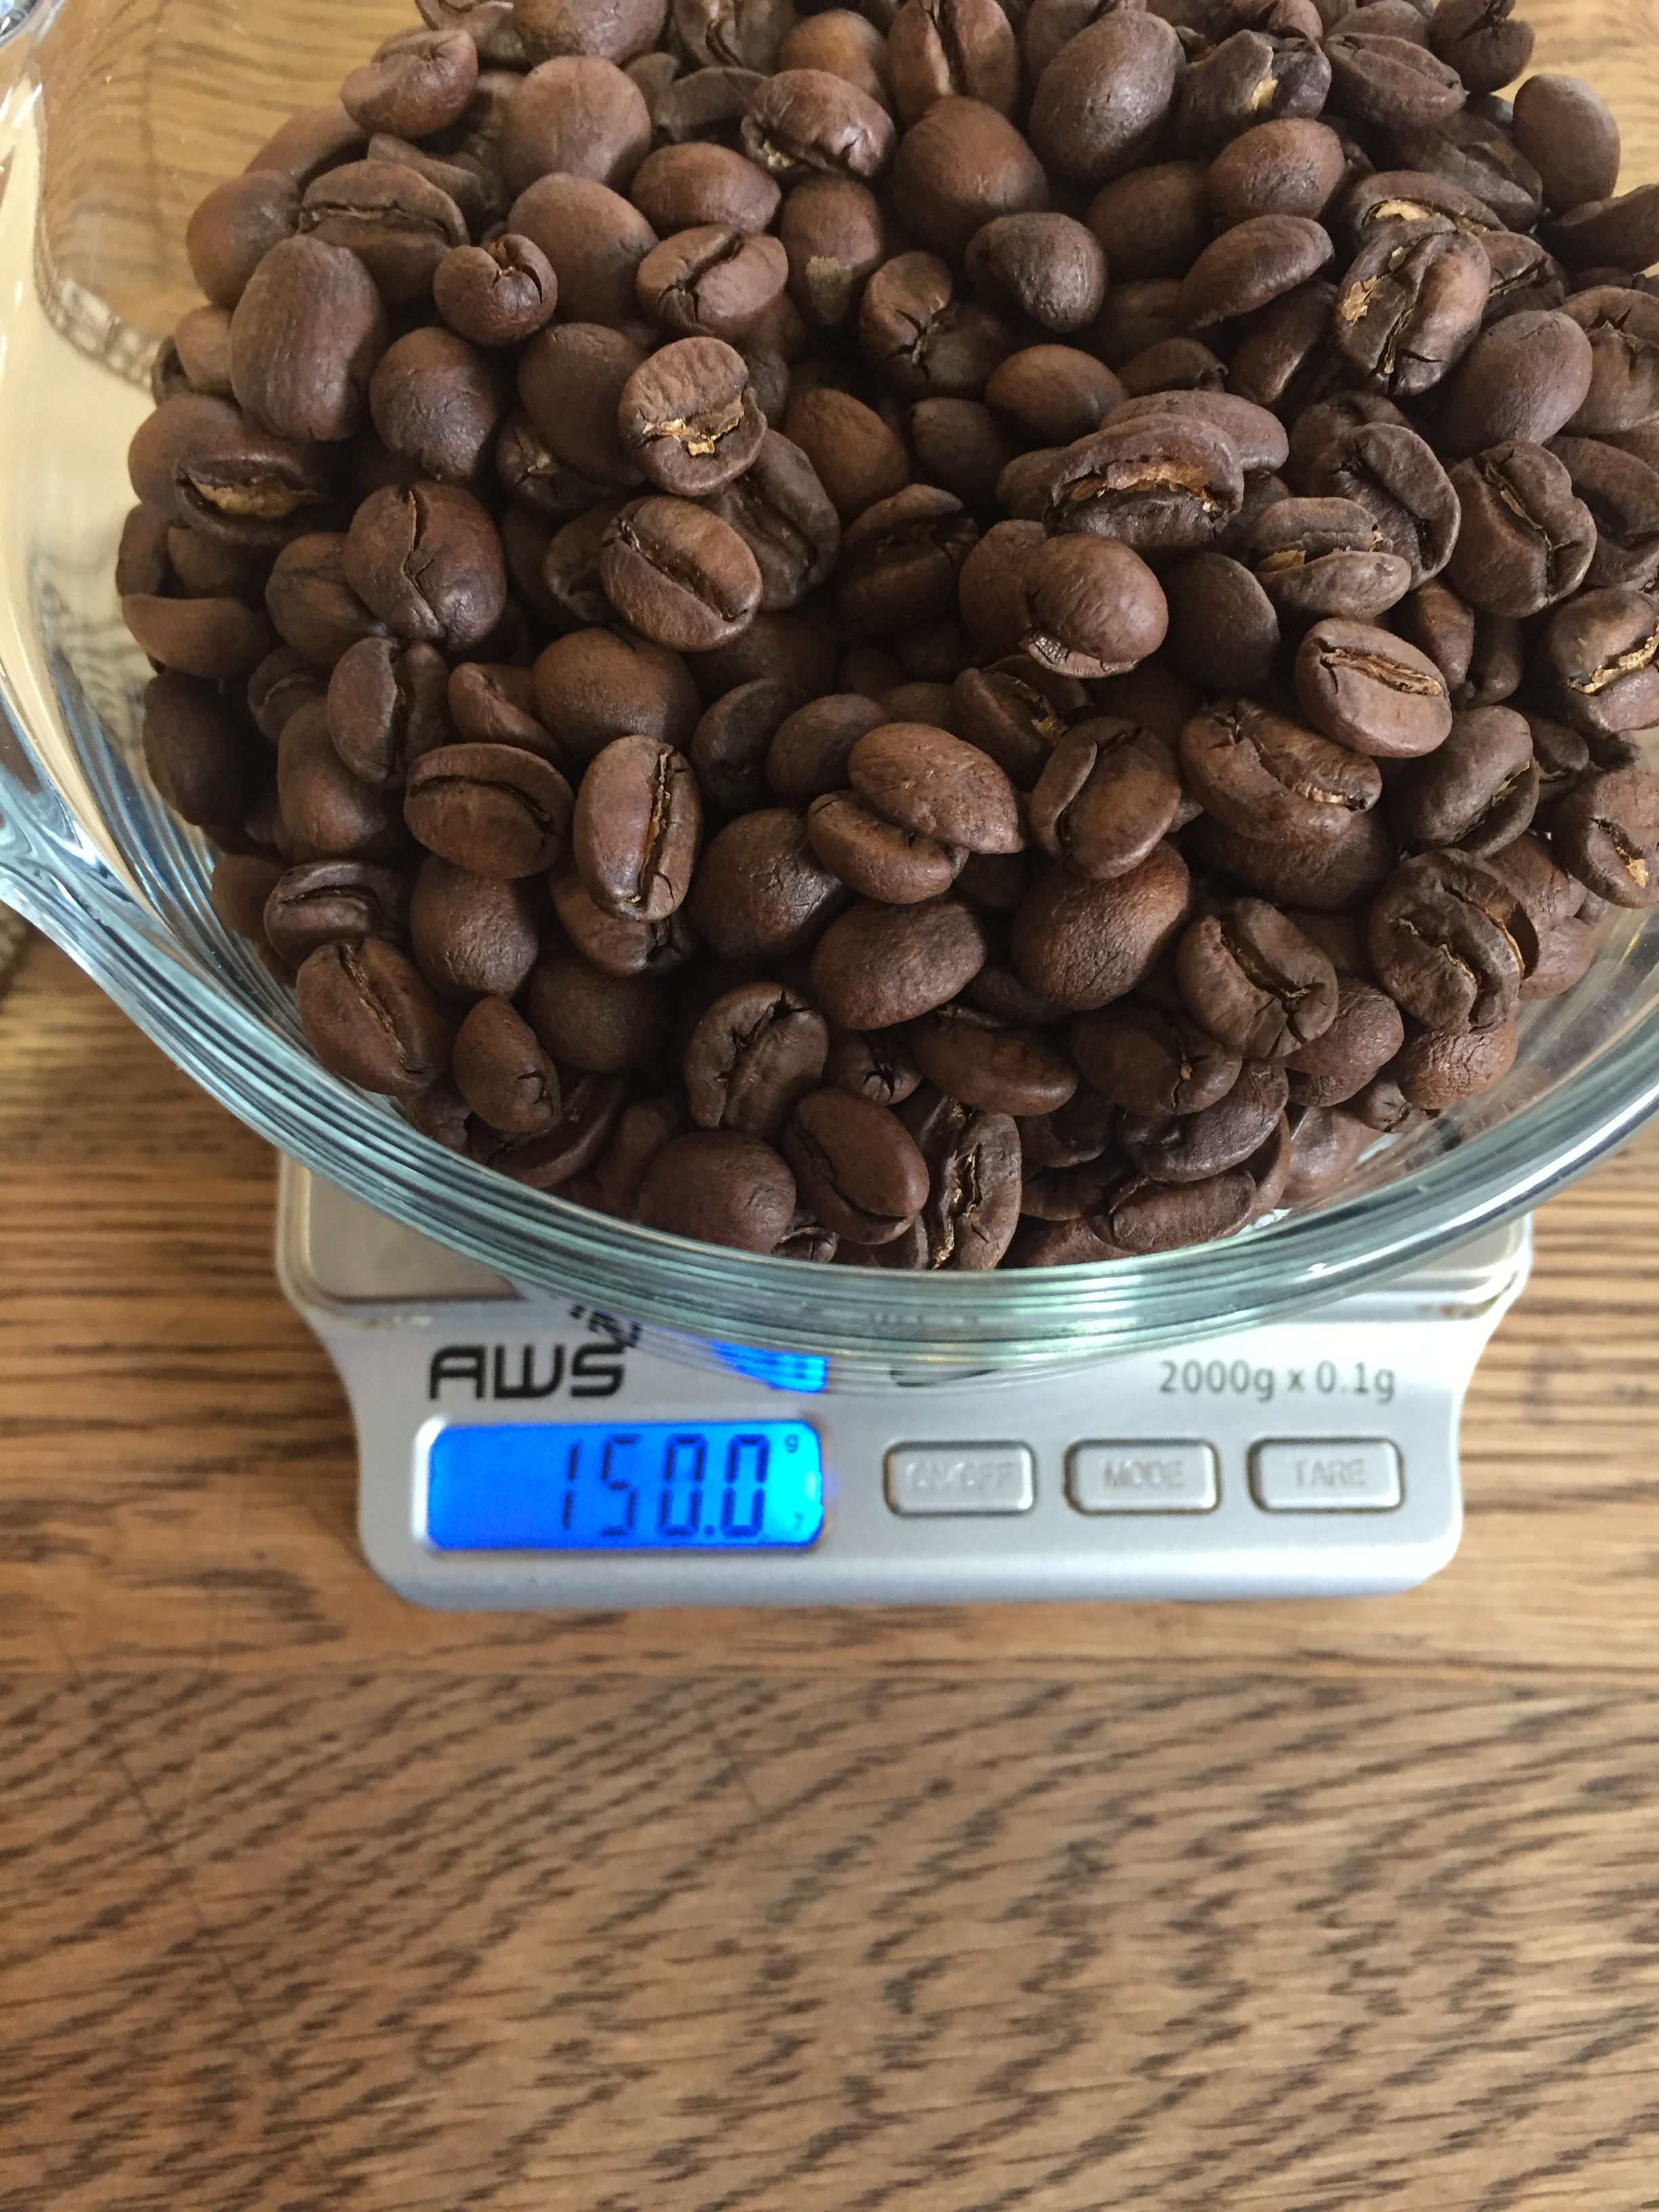 Weigh out the Coffee